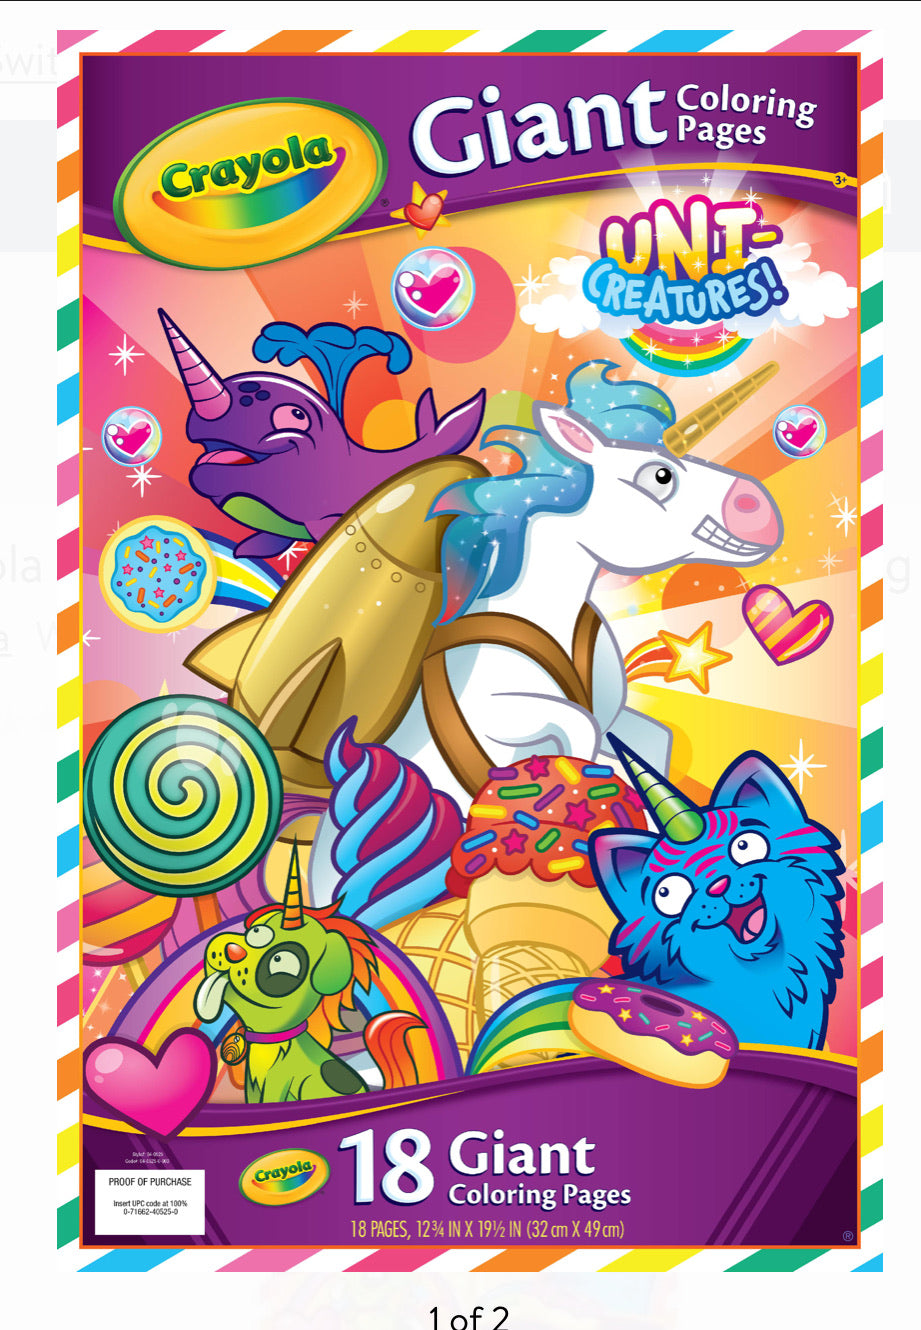 CRAYOLA Giant Coloring Book UNICREATIONS 18 pages NEW